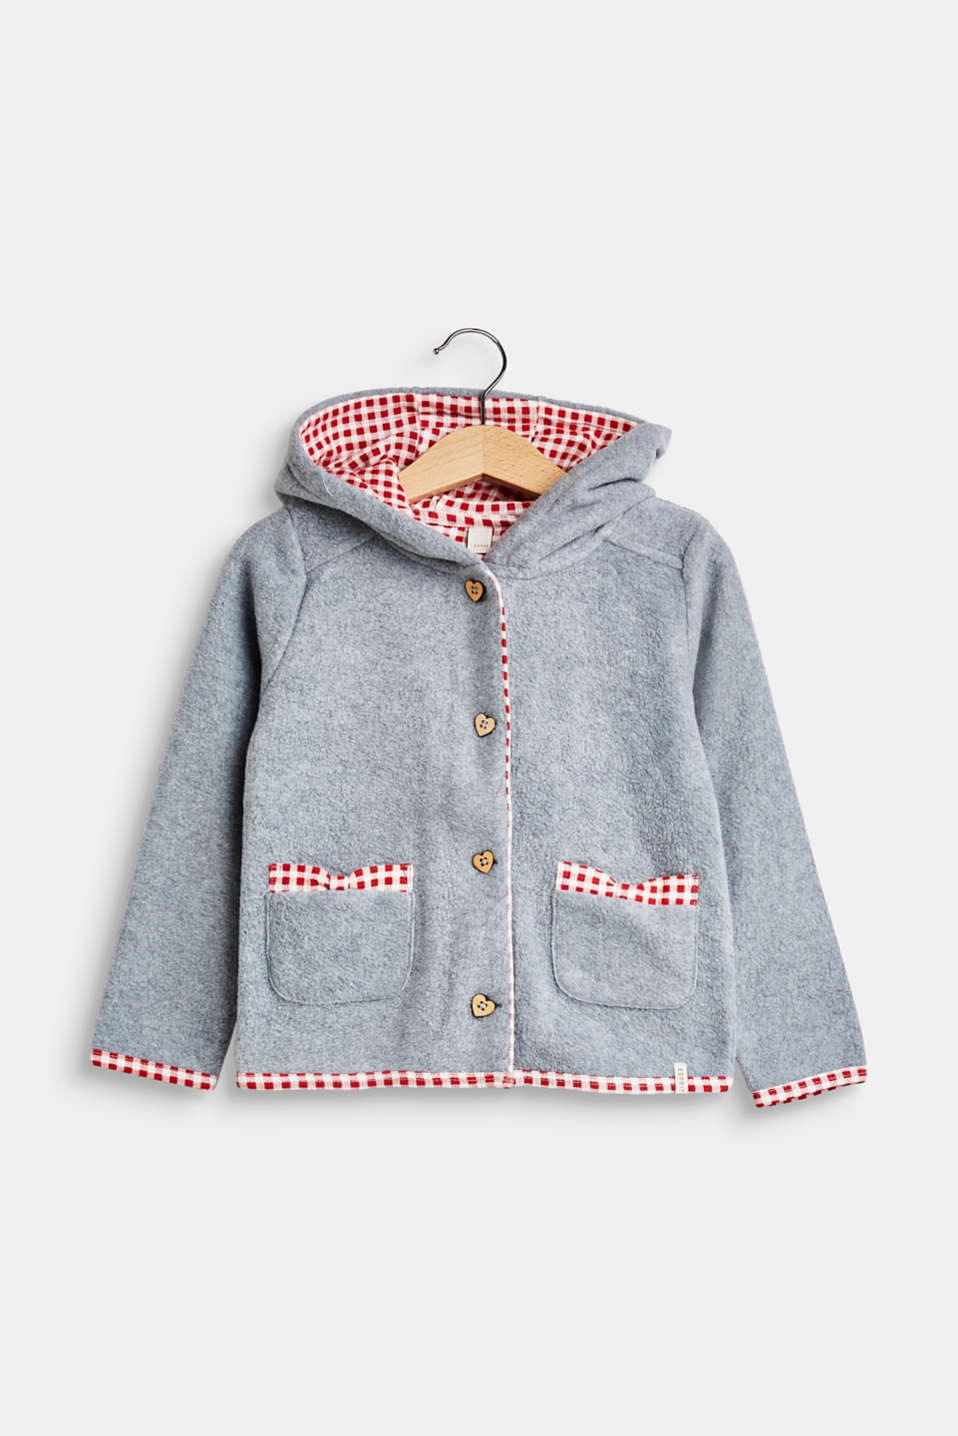 Esprit - Bavarian-style fleece jacket